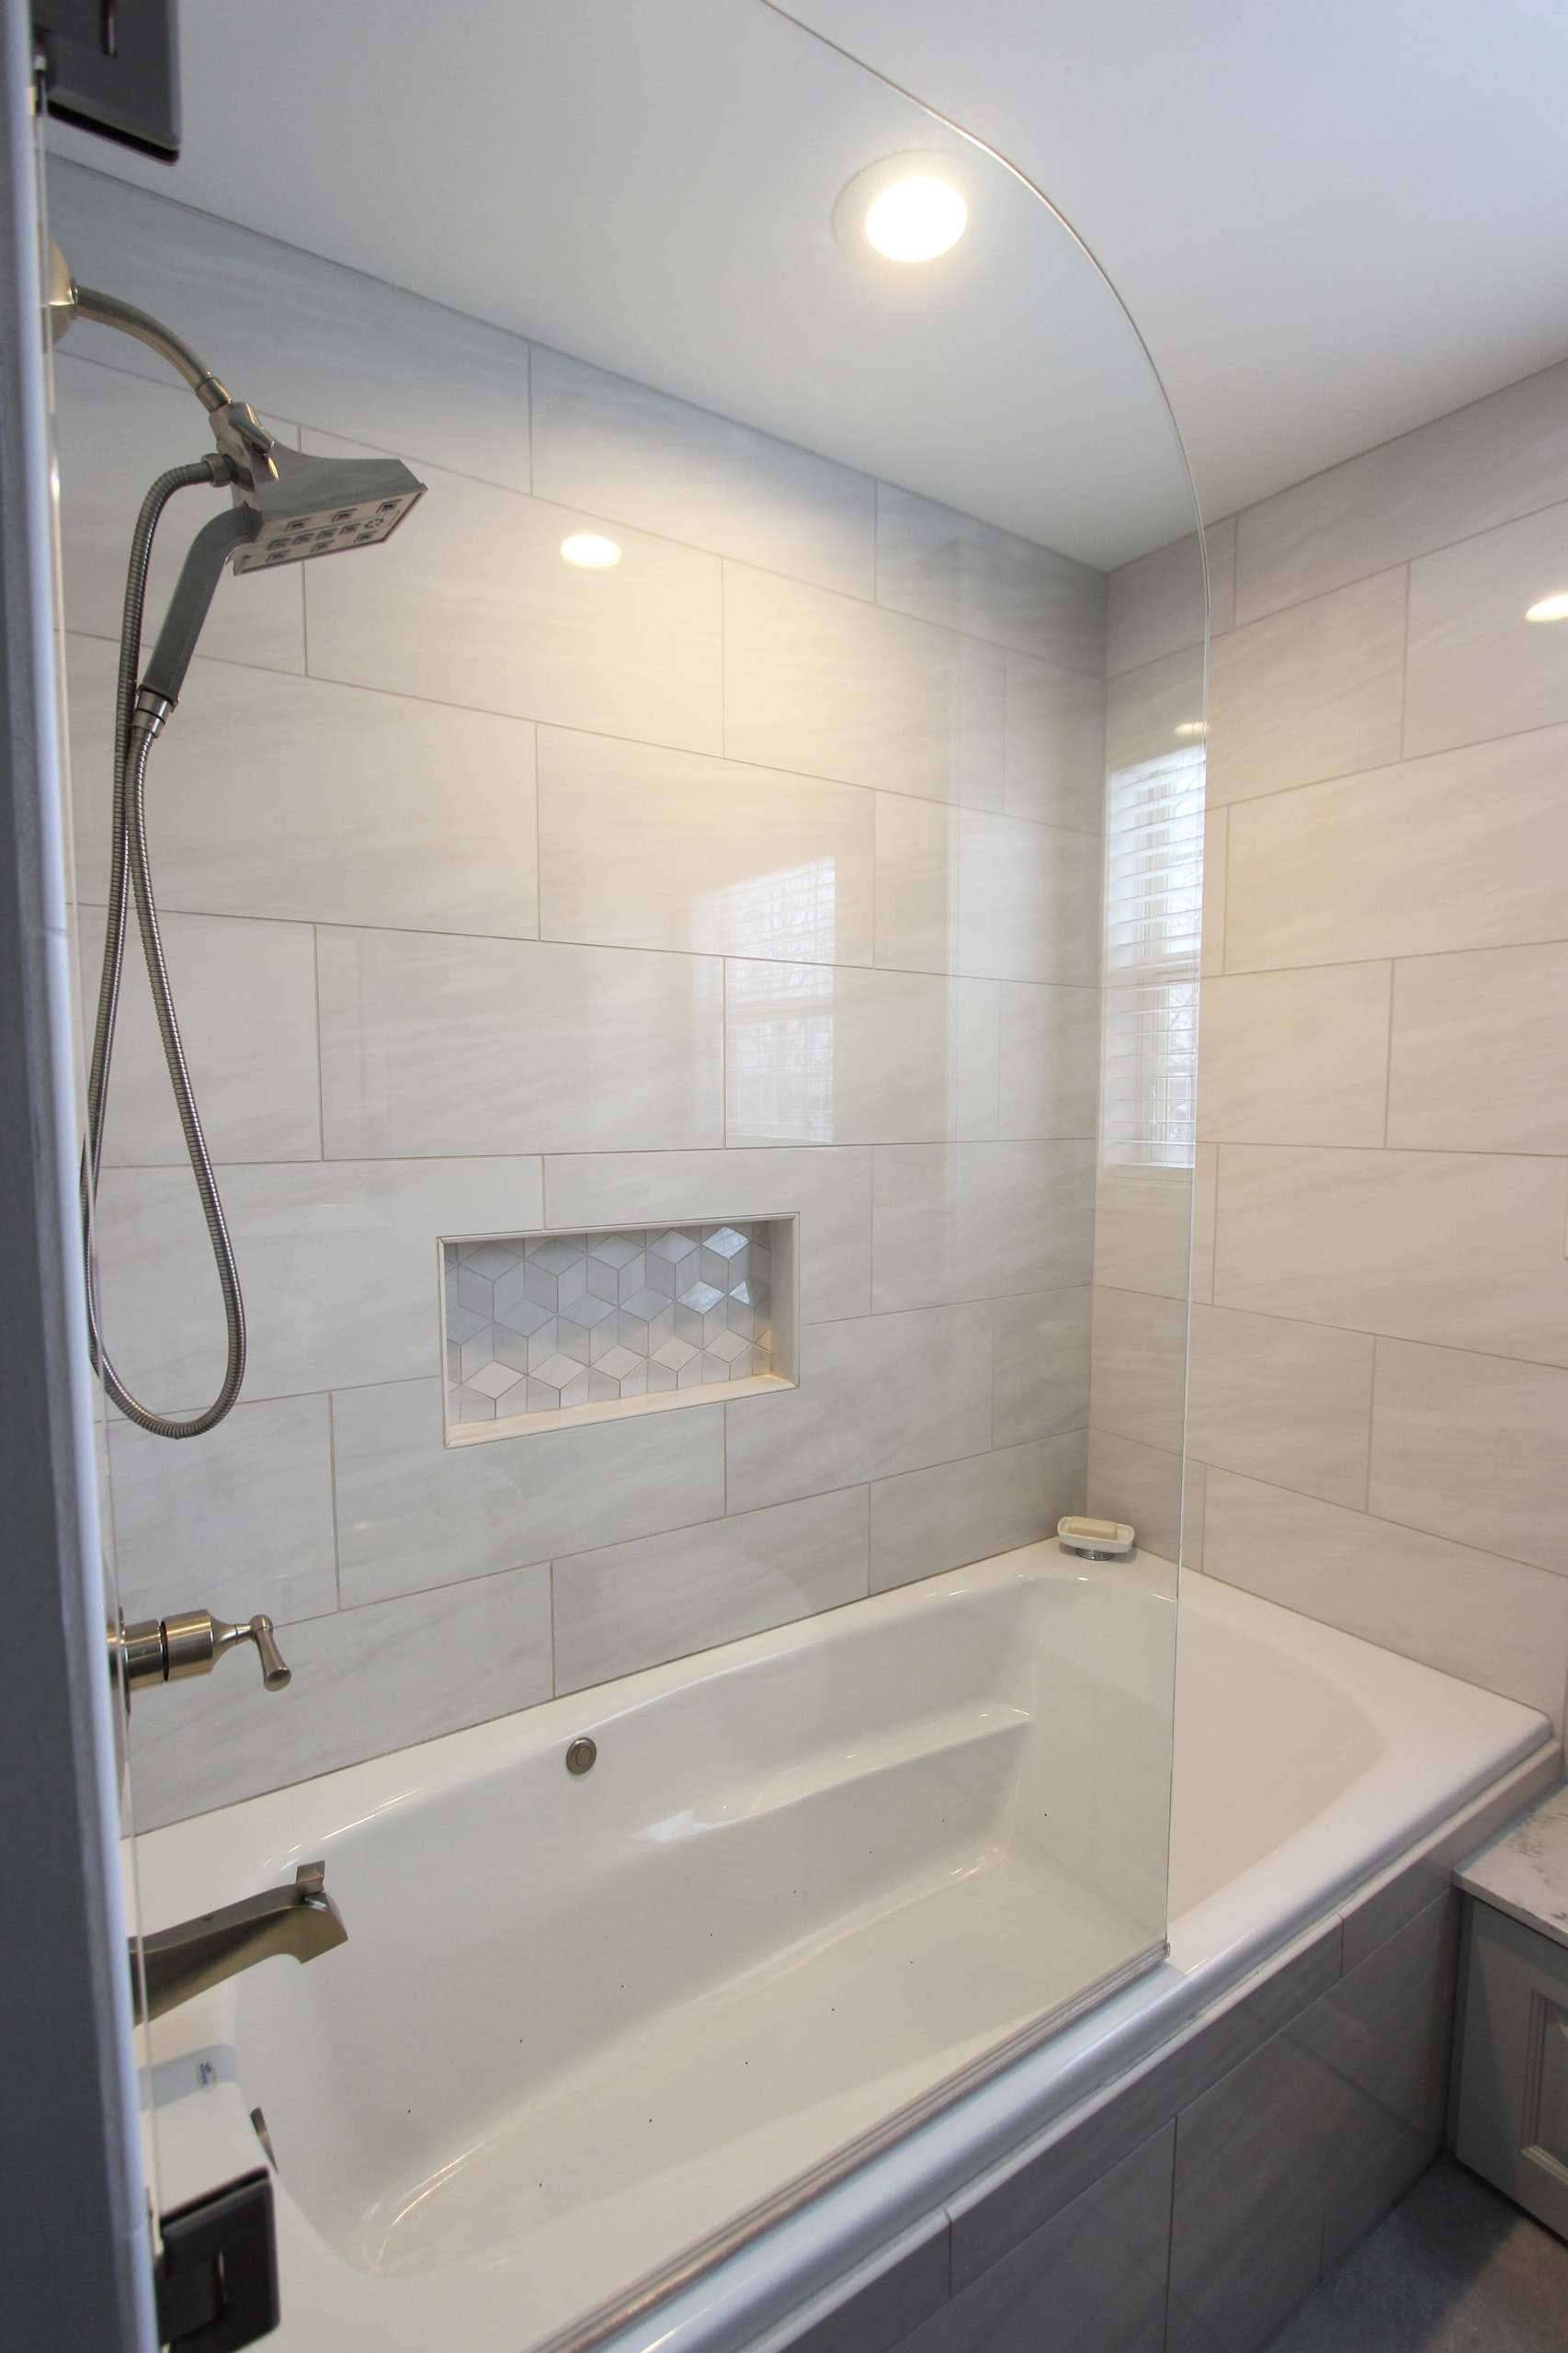 75 Beautiful Small Alcove Shower Pictures & Ideas January Bathroom Alcove Shower